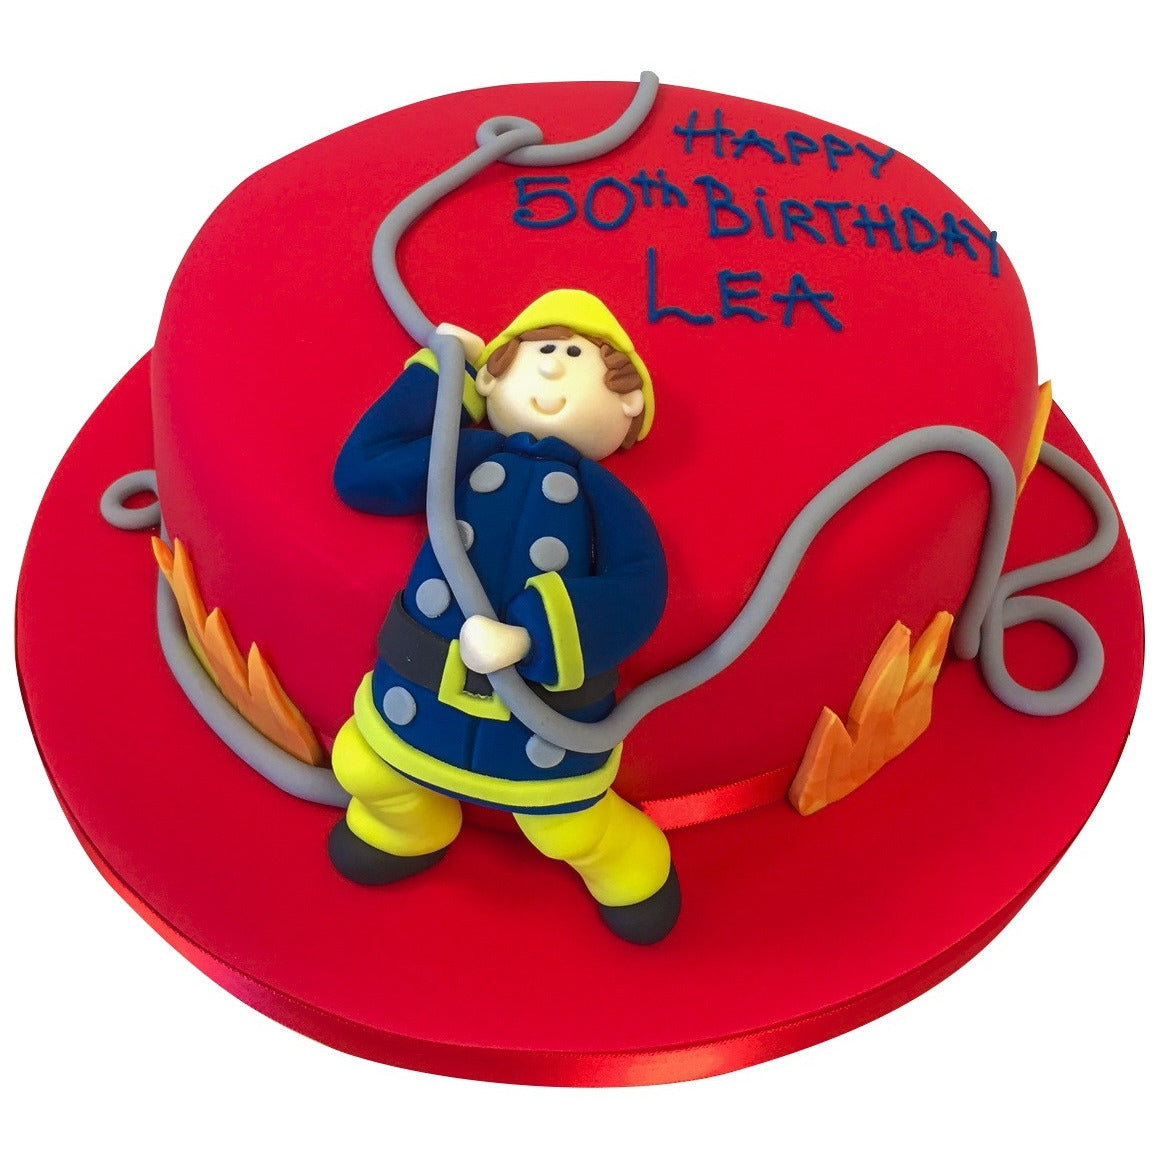 Fireman Sam Cake Buy Online Free Uk Delivery New Cakes